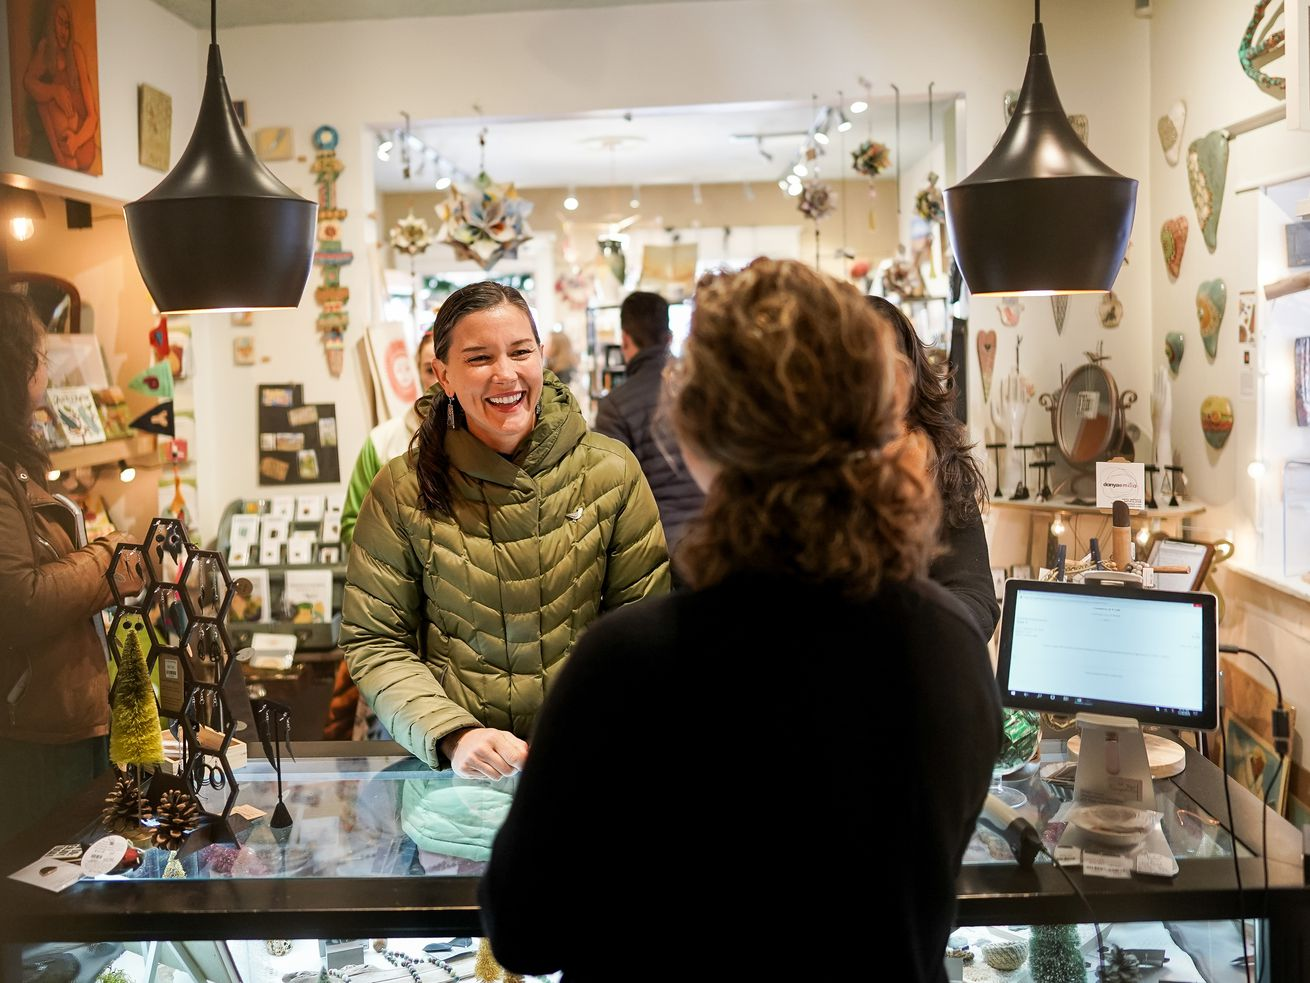 Salt Lake City Mayor-elect Erin Mendenhall talks to Gail Piccoli, owner of Commerce & Craft, right, while making a purchase at the shop during a Small Business Saturday event in Salt Lake City on Saturday, Nov. 30, 2019.